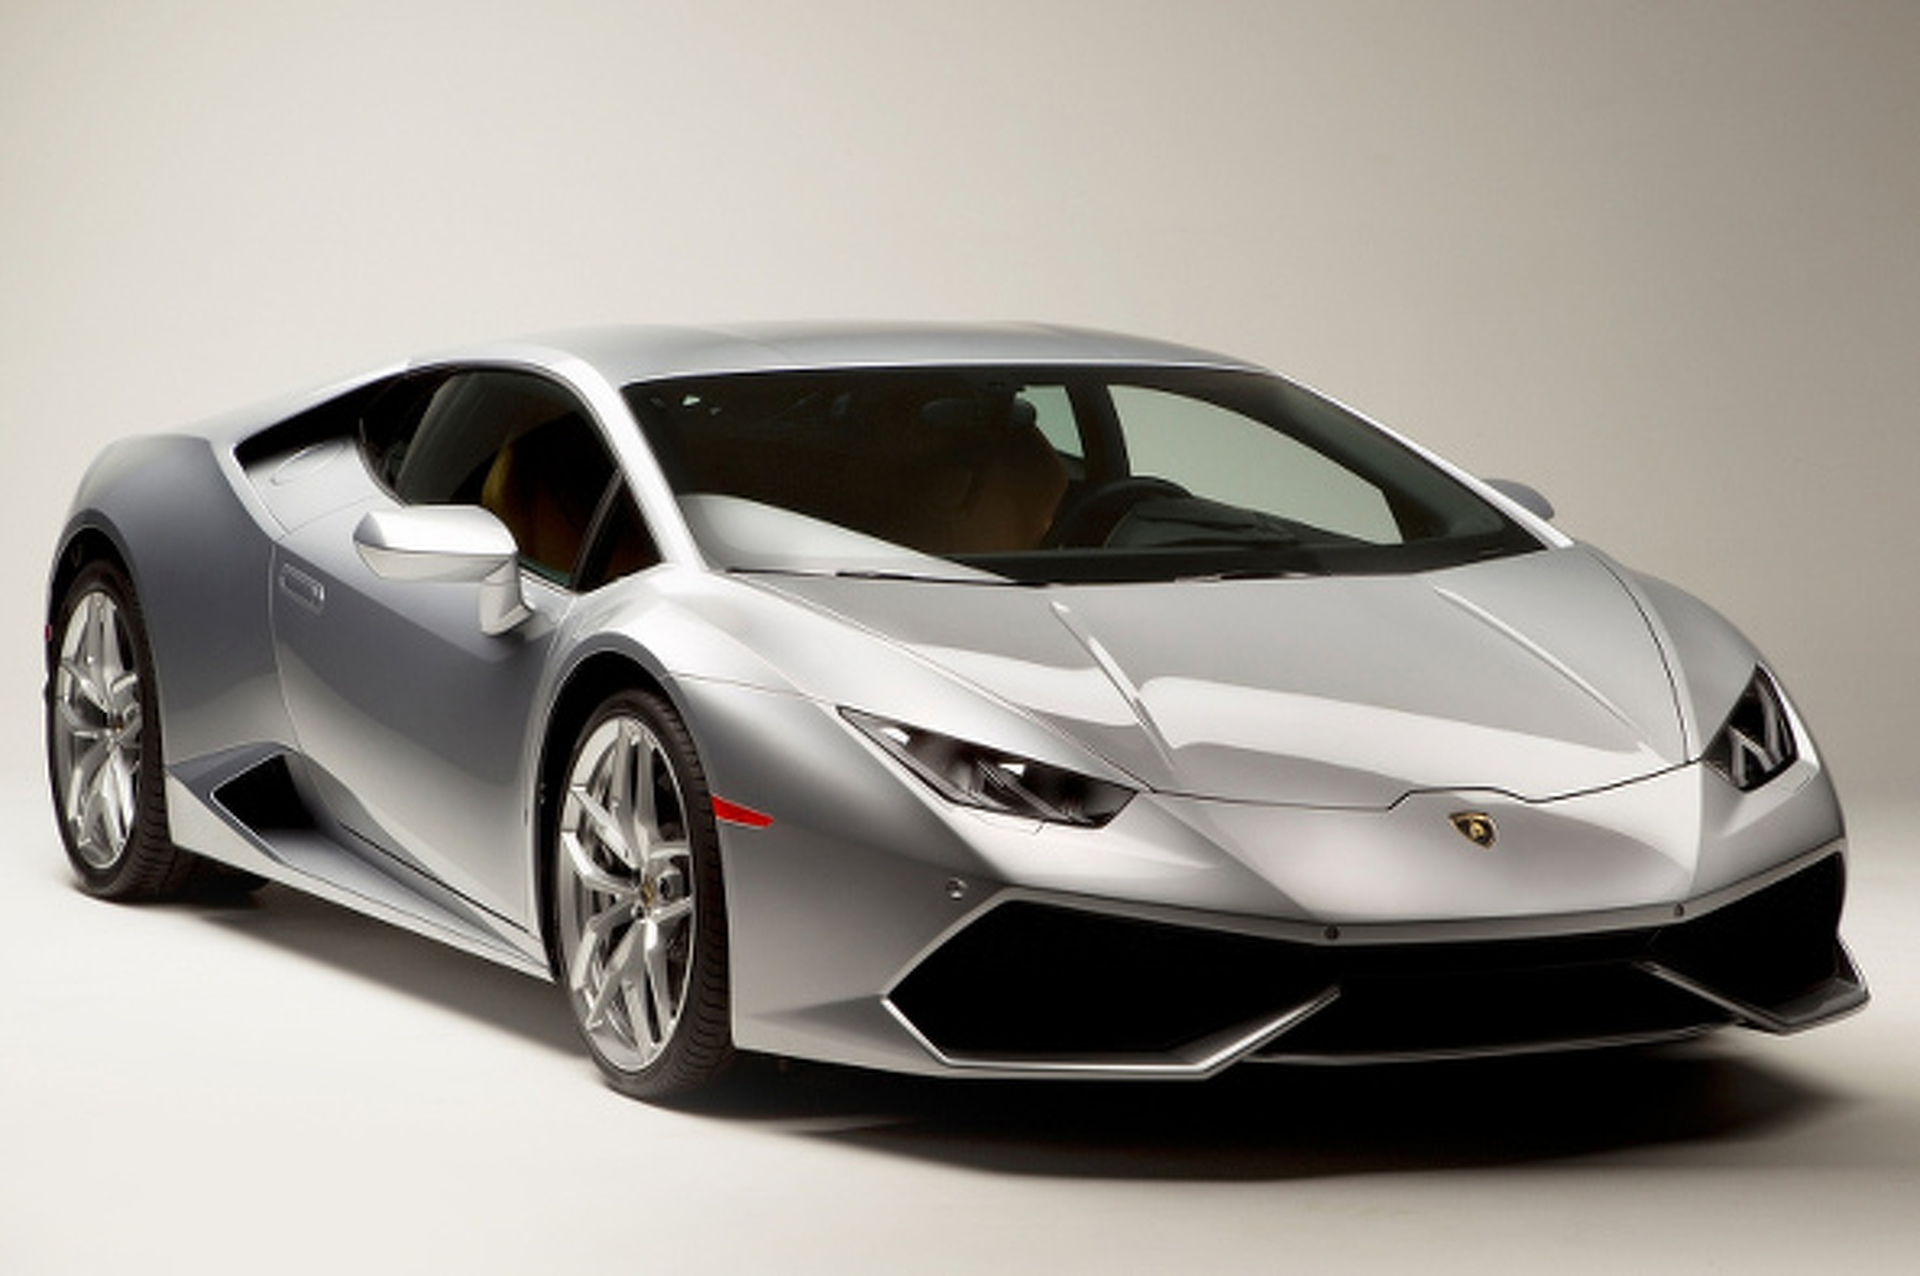 Ten Things You Need To Know About The Lamborghini Huracan